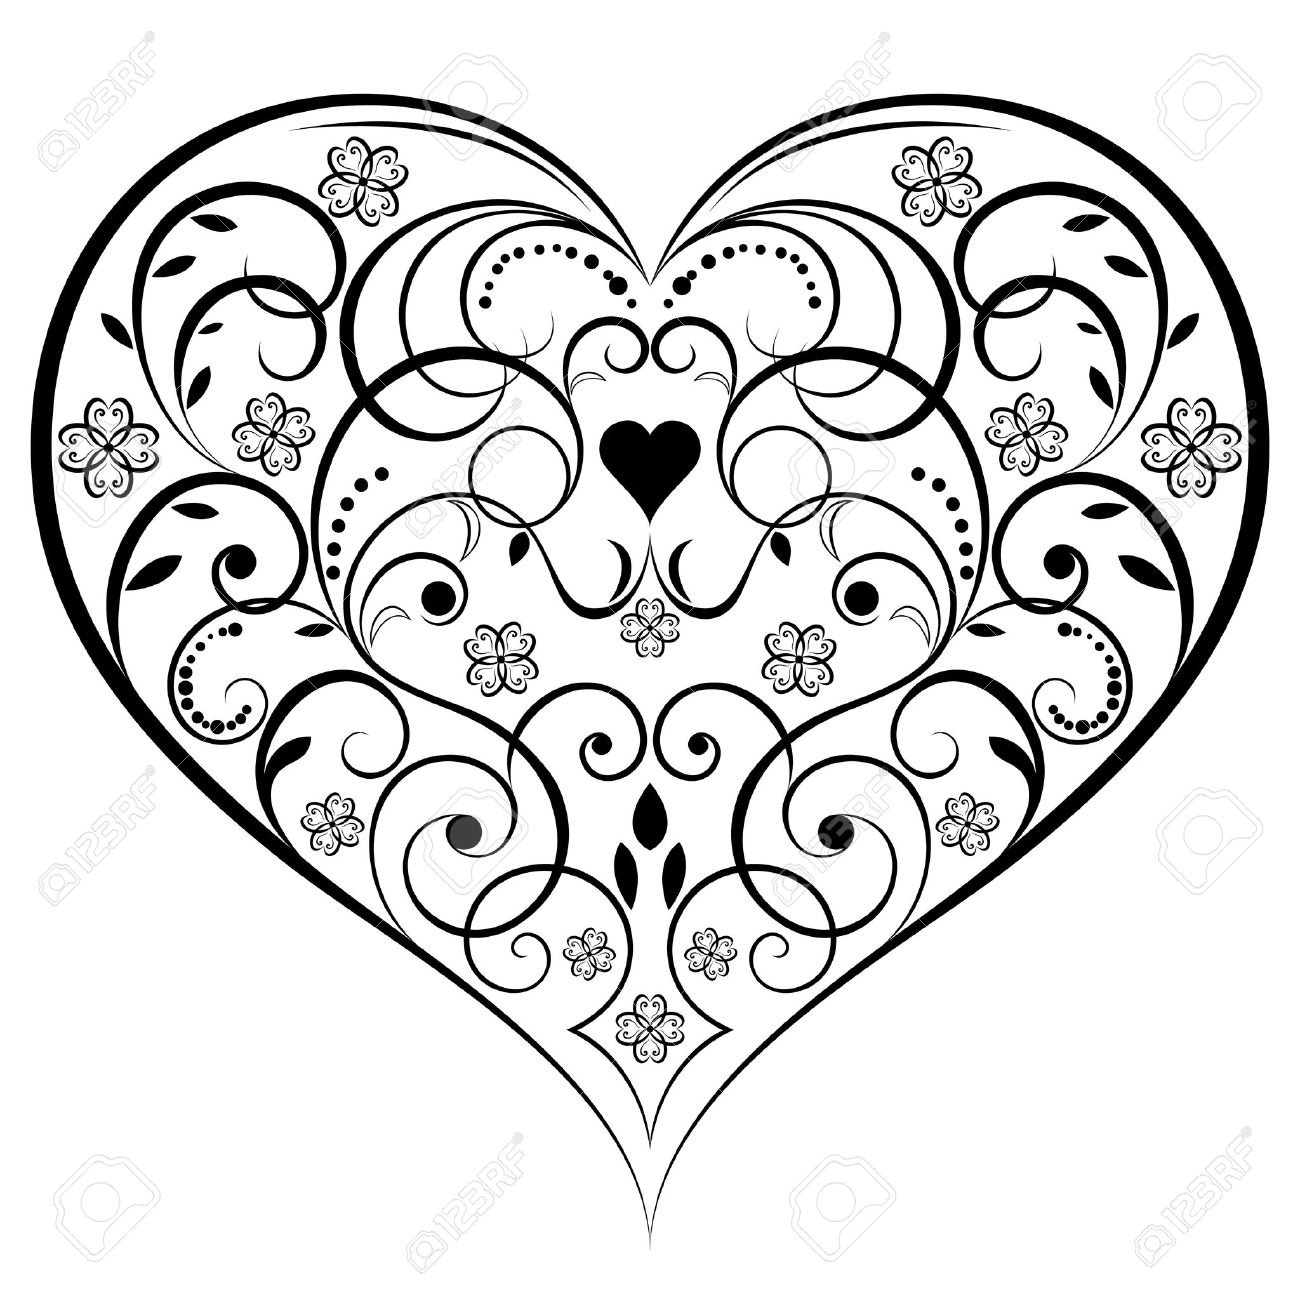 1300x1300 Heart Drawing Stock Photos Amp Pictures. Royalty Free Heart Drawing